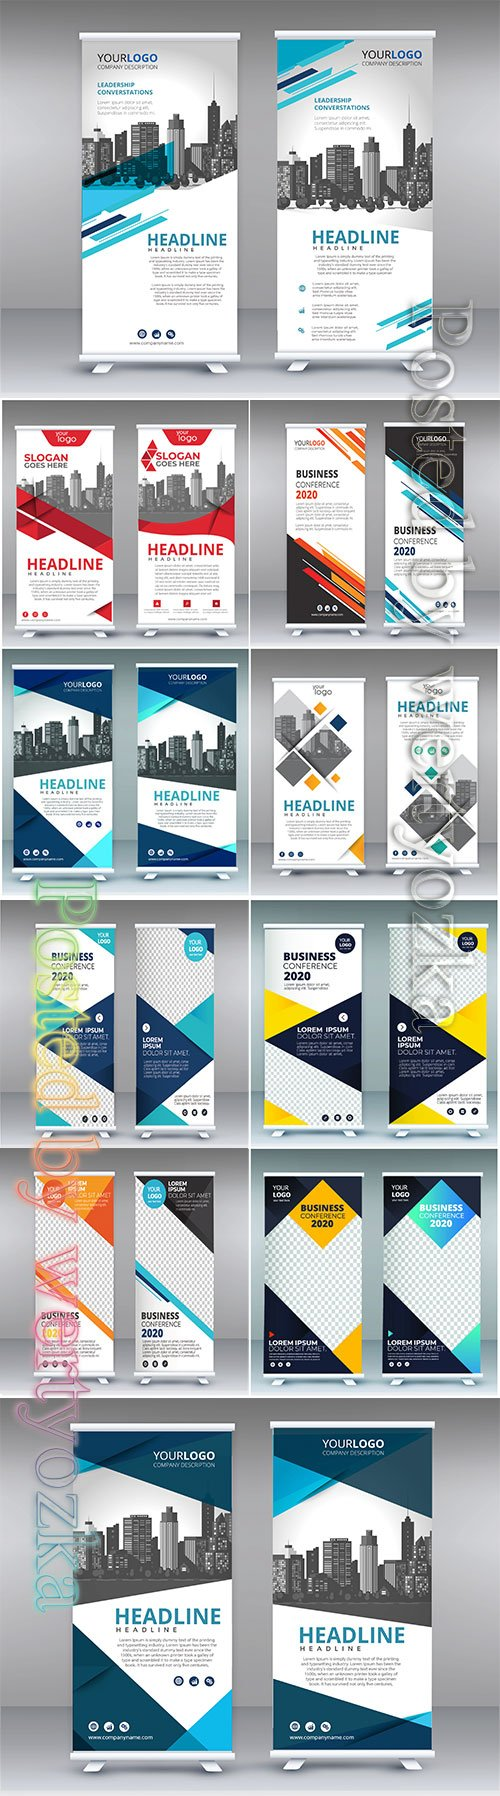 Roll banner vector design template layout